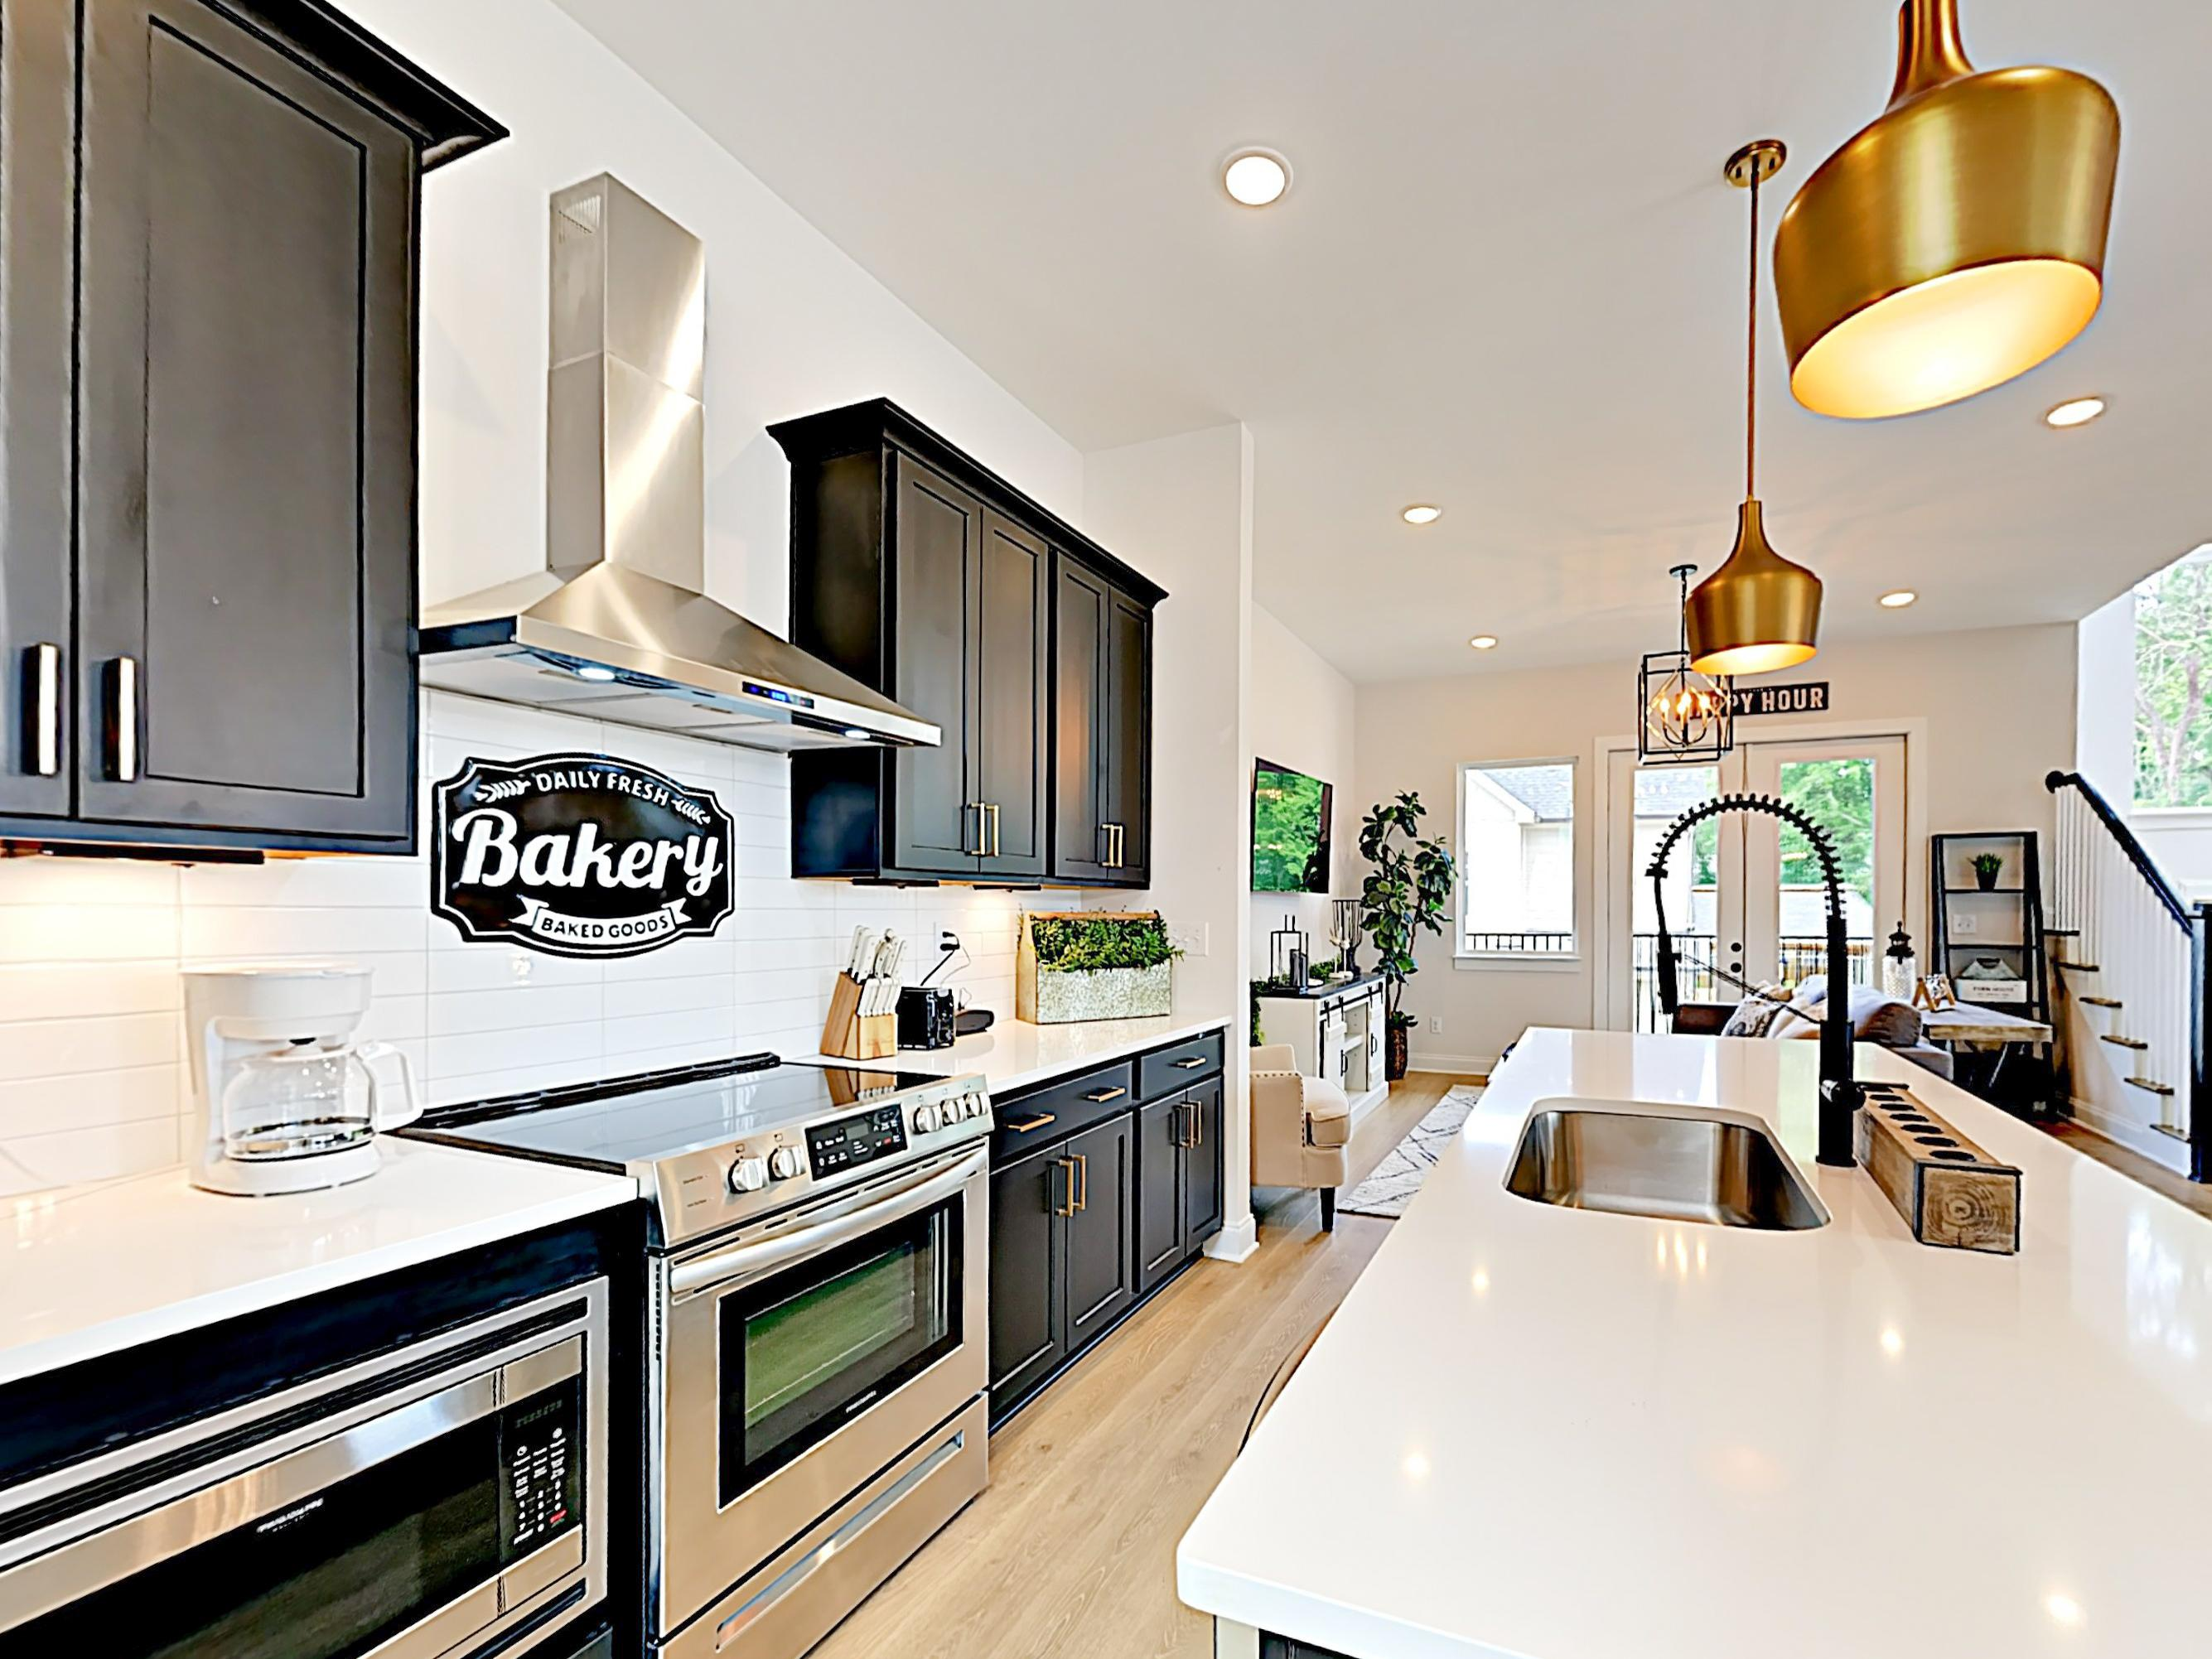 Aspiring home chefs will love the truly modern kitchen.